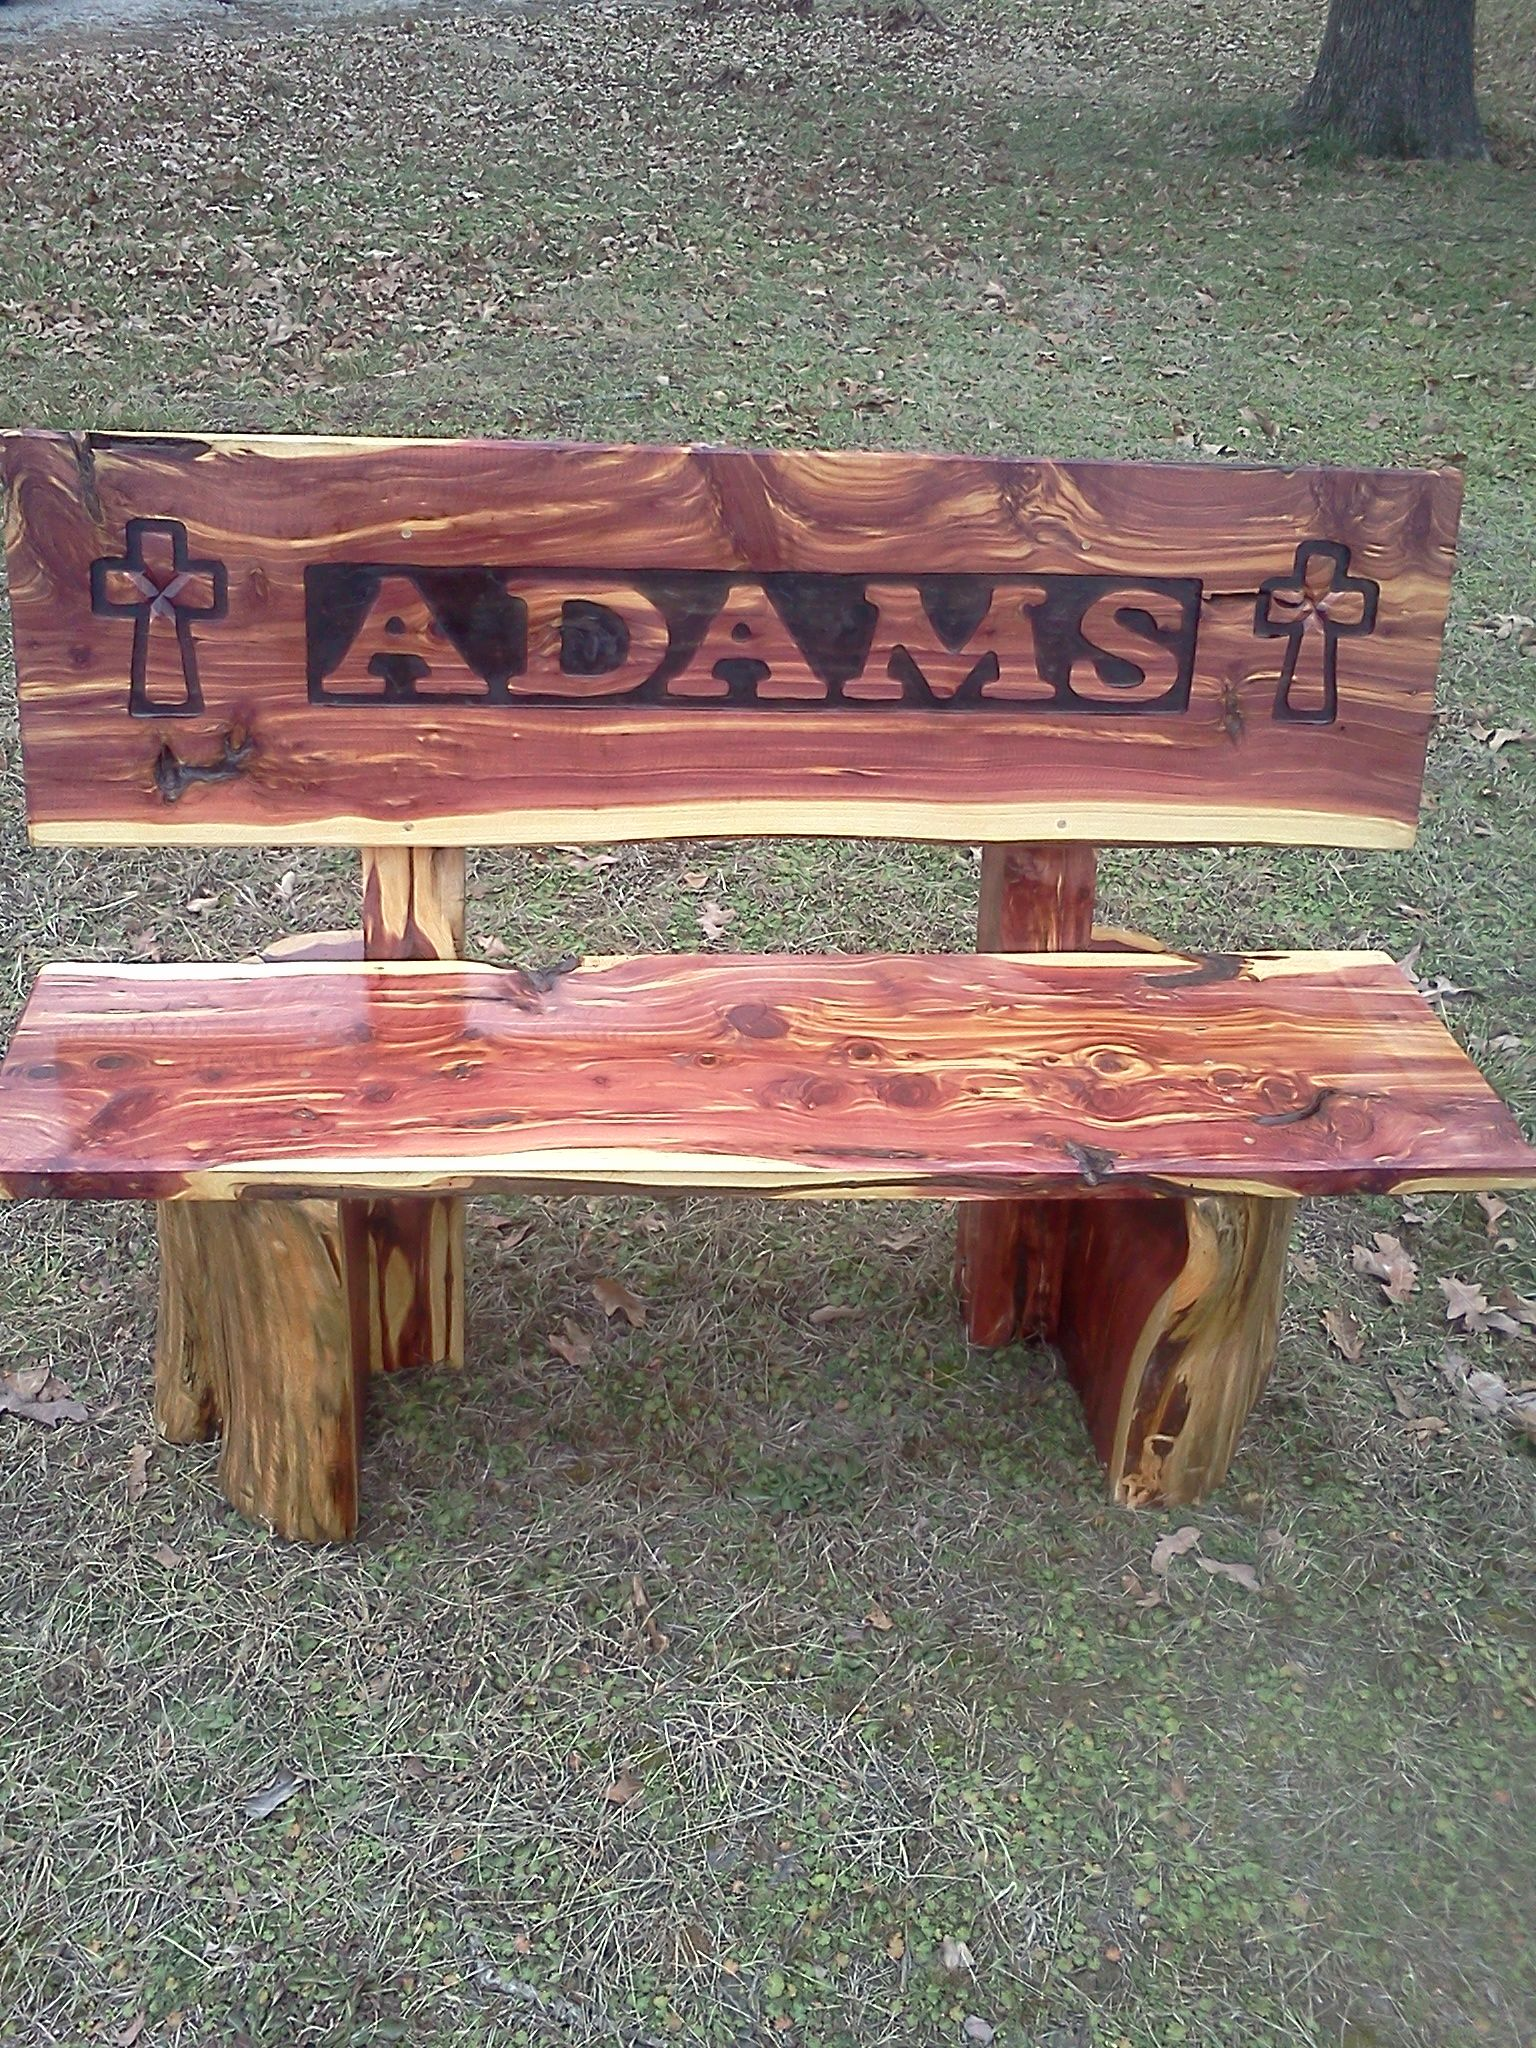 Cedar log bench for the bus stop log furniture tools outdoor furniture bench